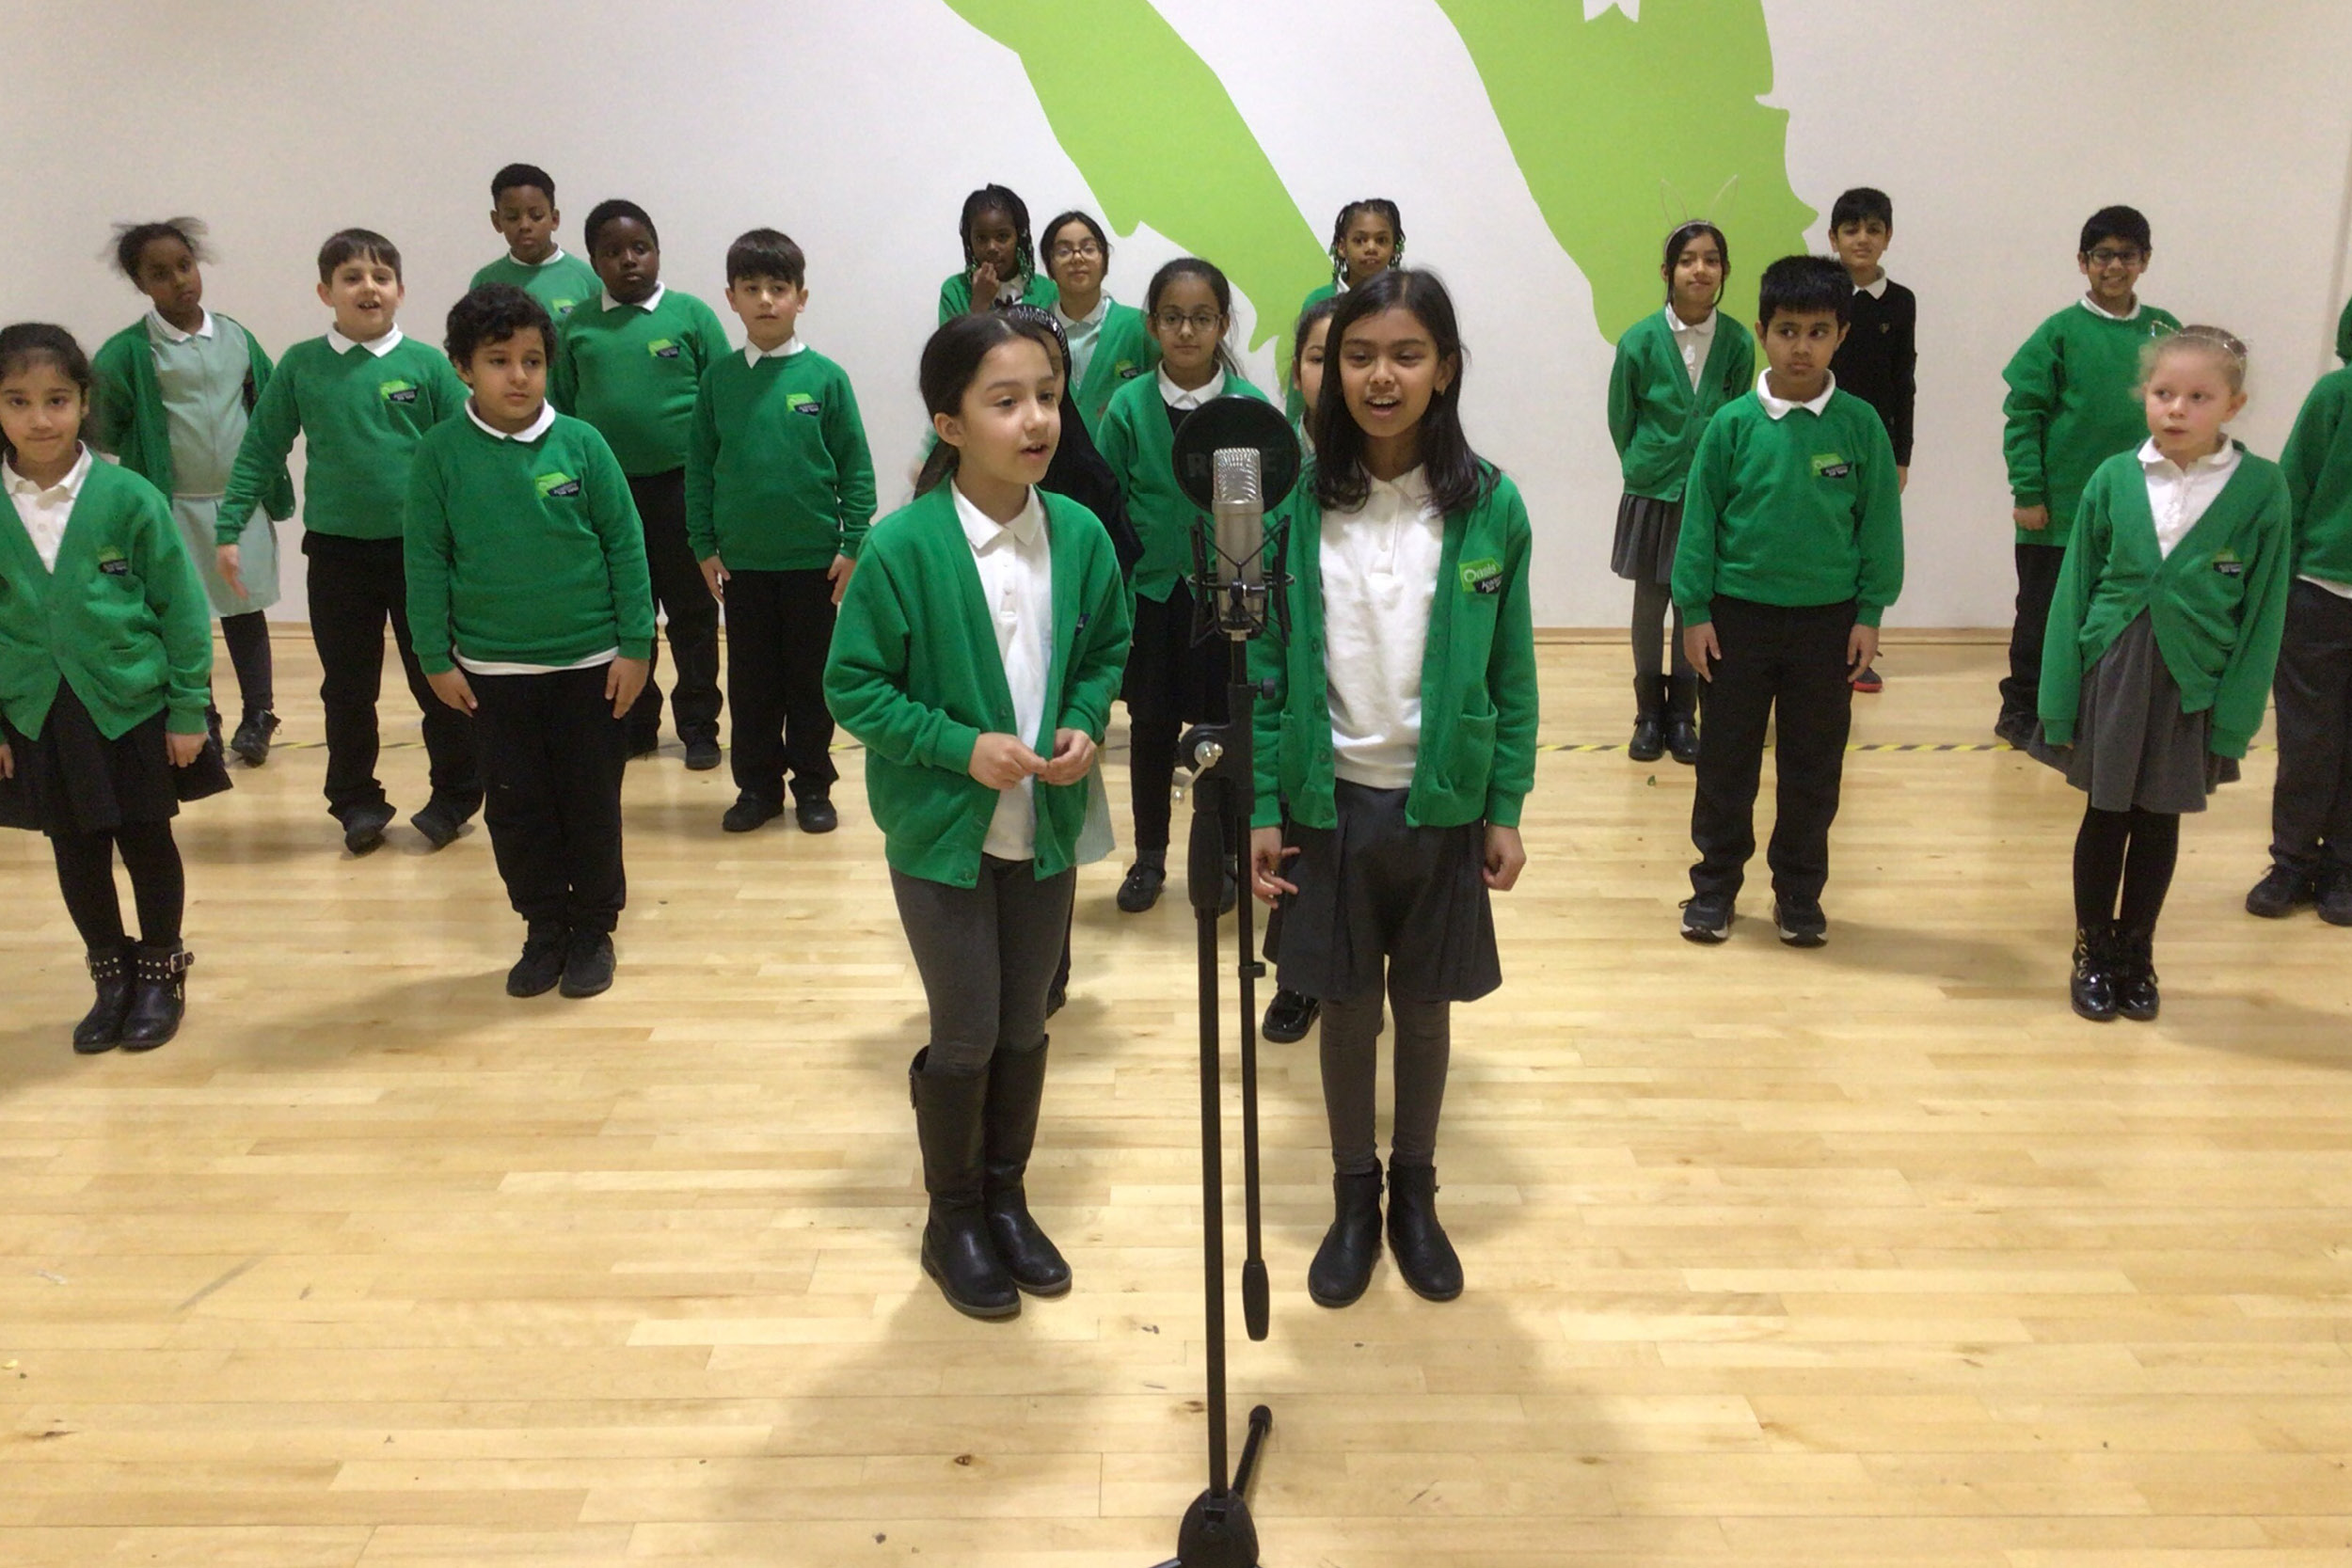 'It's a holly jolly Christmas', Oasis Academy Don Valley has found a great way to mark the festive season